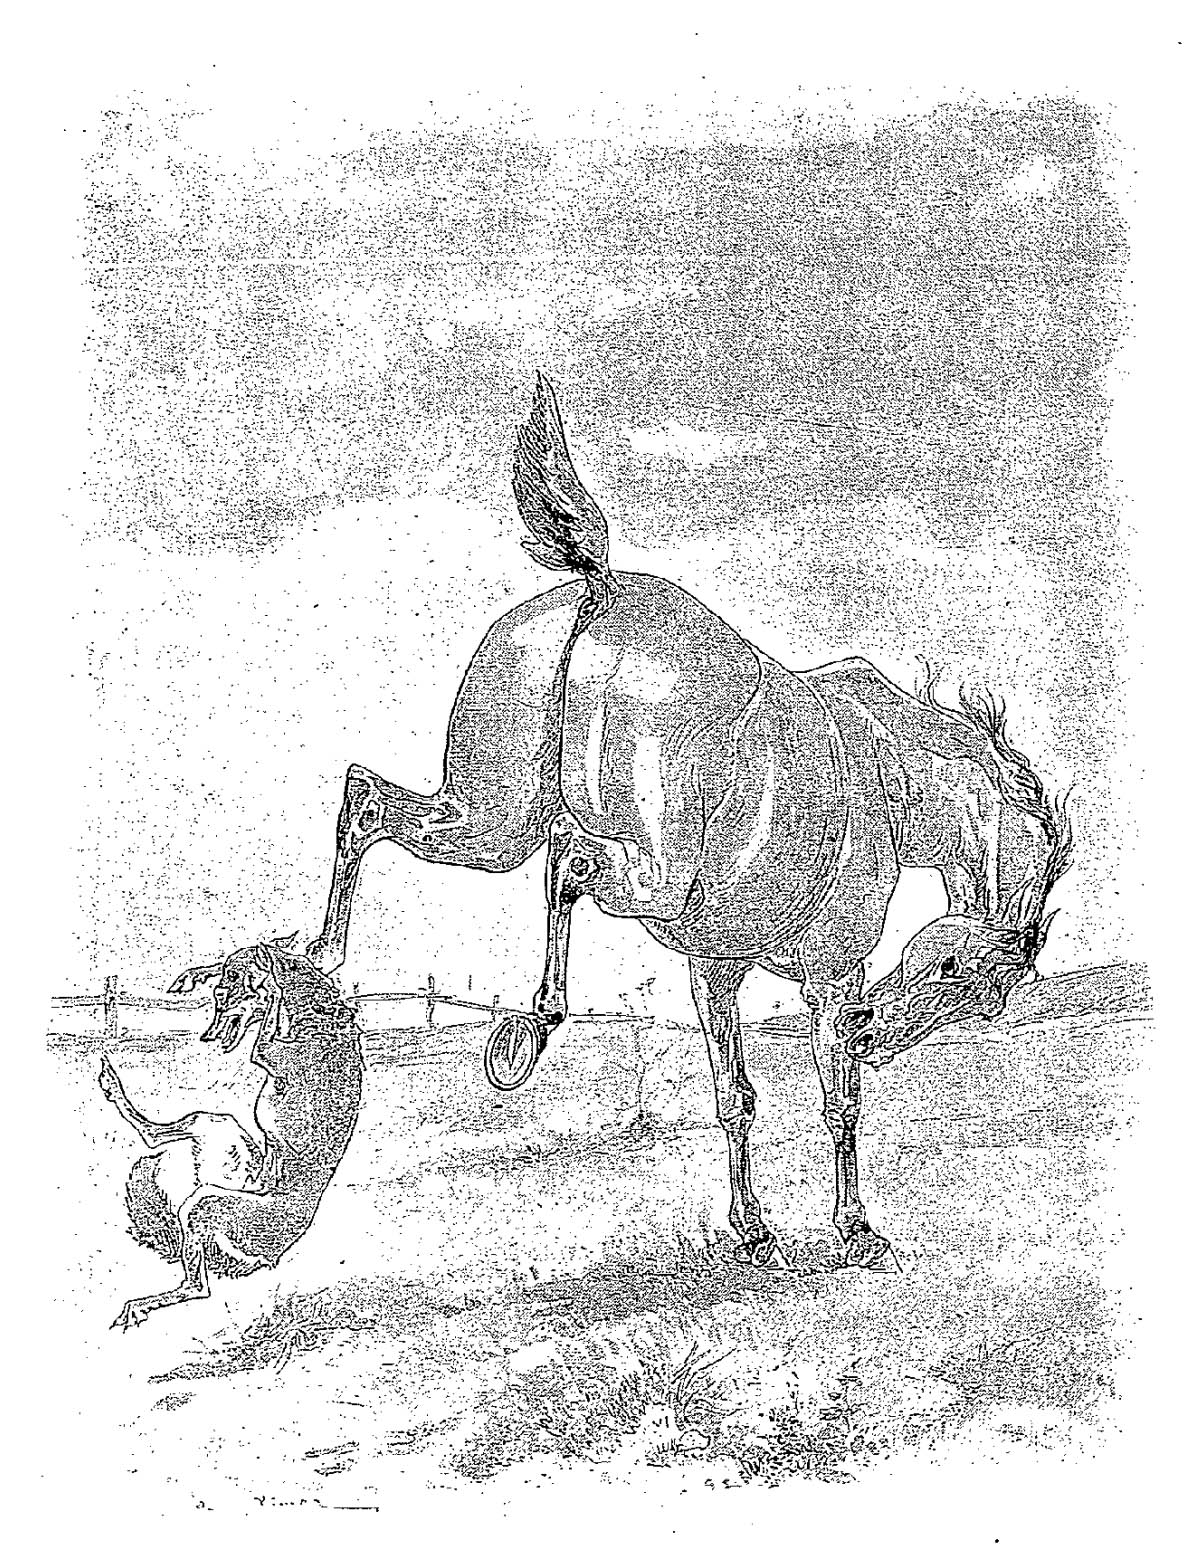 illustrations fables de la Fontaine par Vimar - le cheval et le loup